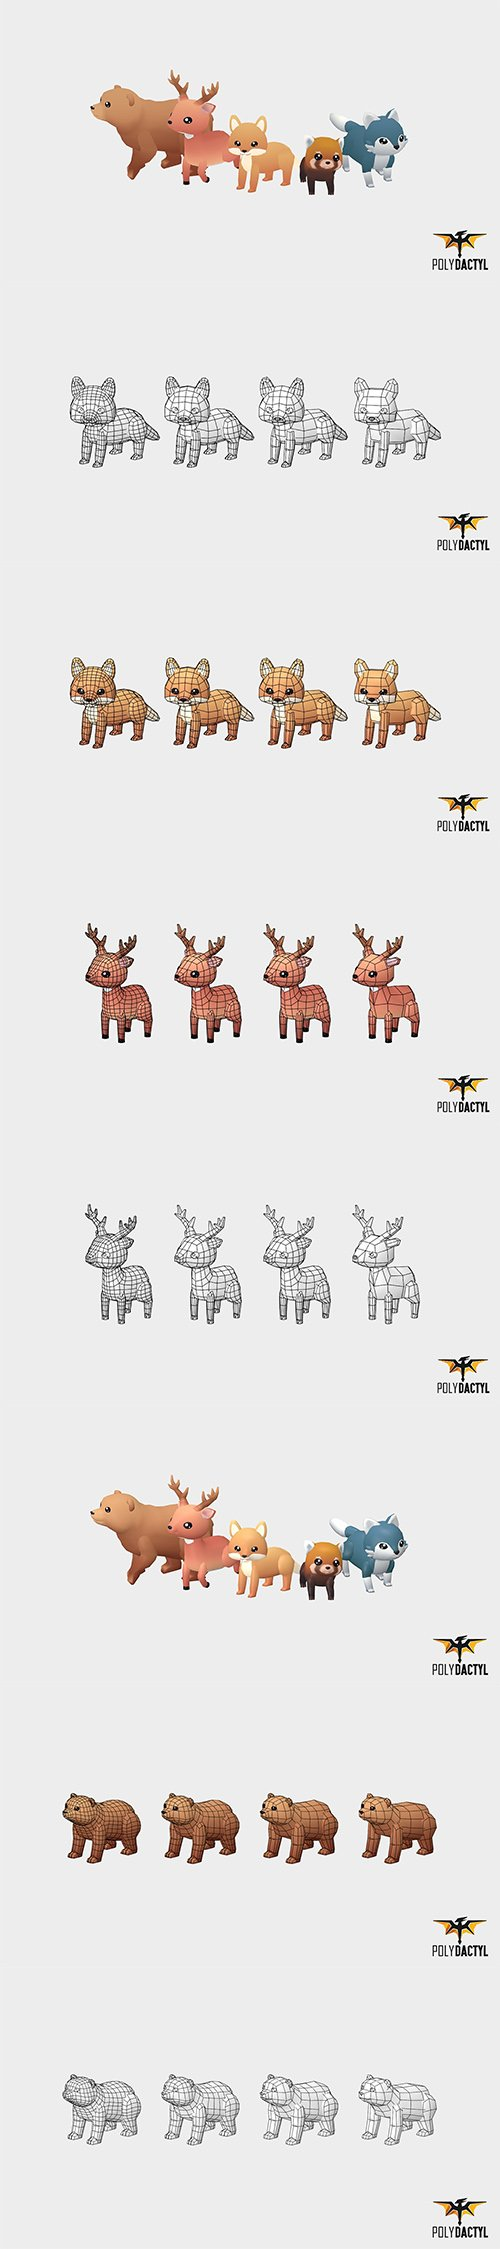 Cuberbrush - Forest Animals - Wild Series